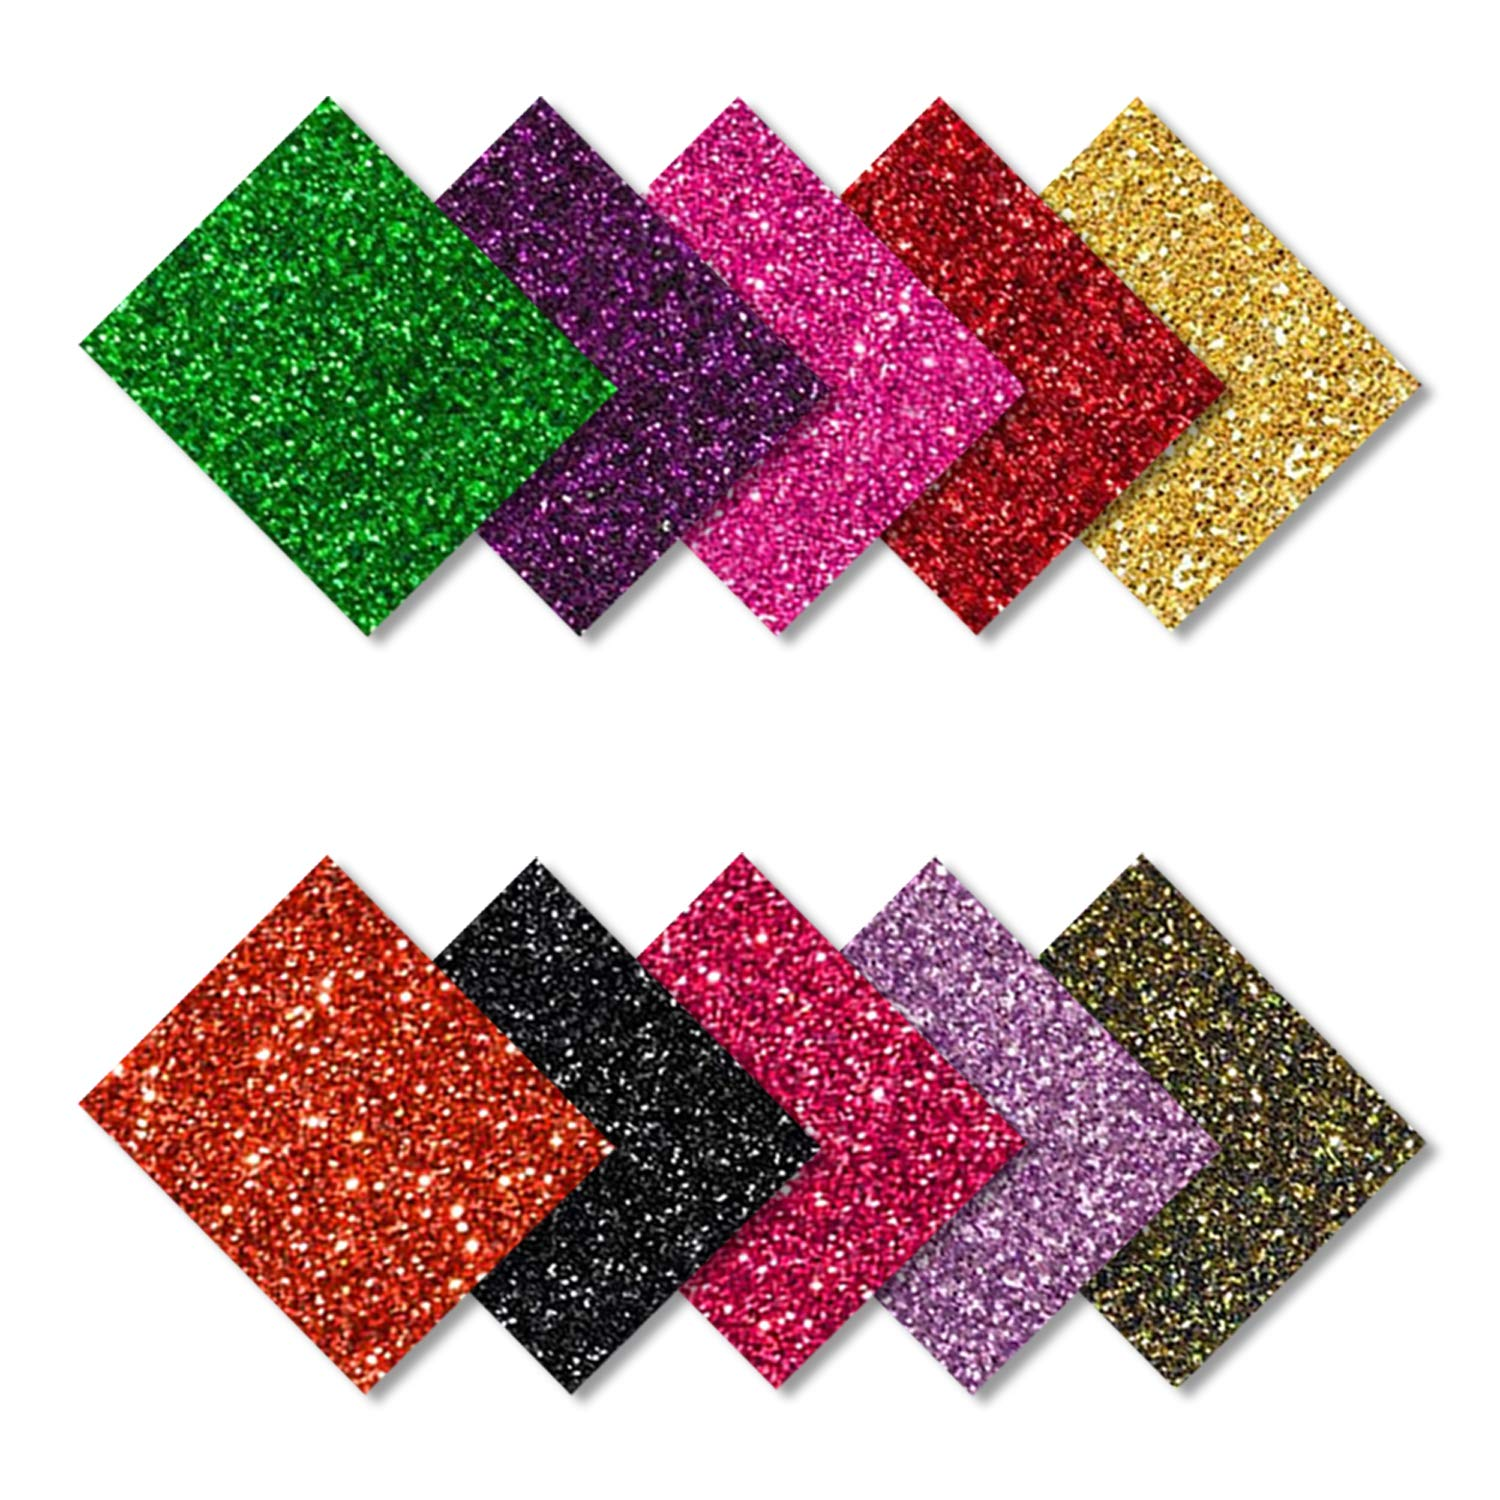 MiPremium PU Heat Transfer Vinyl - Iron On Vinyl Starter Pack, Assorted HTV Glitter Bundle